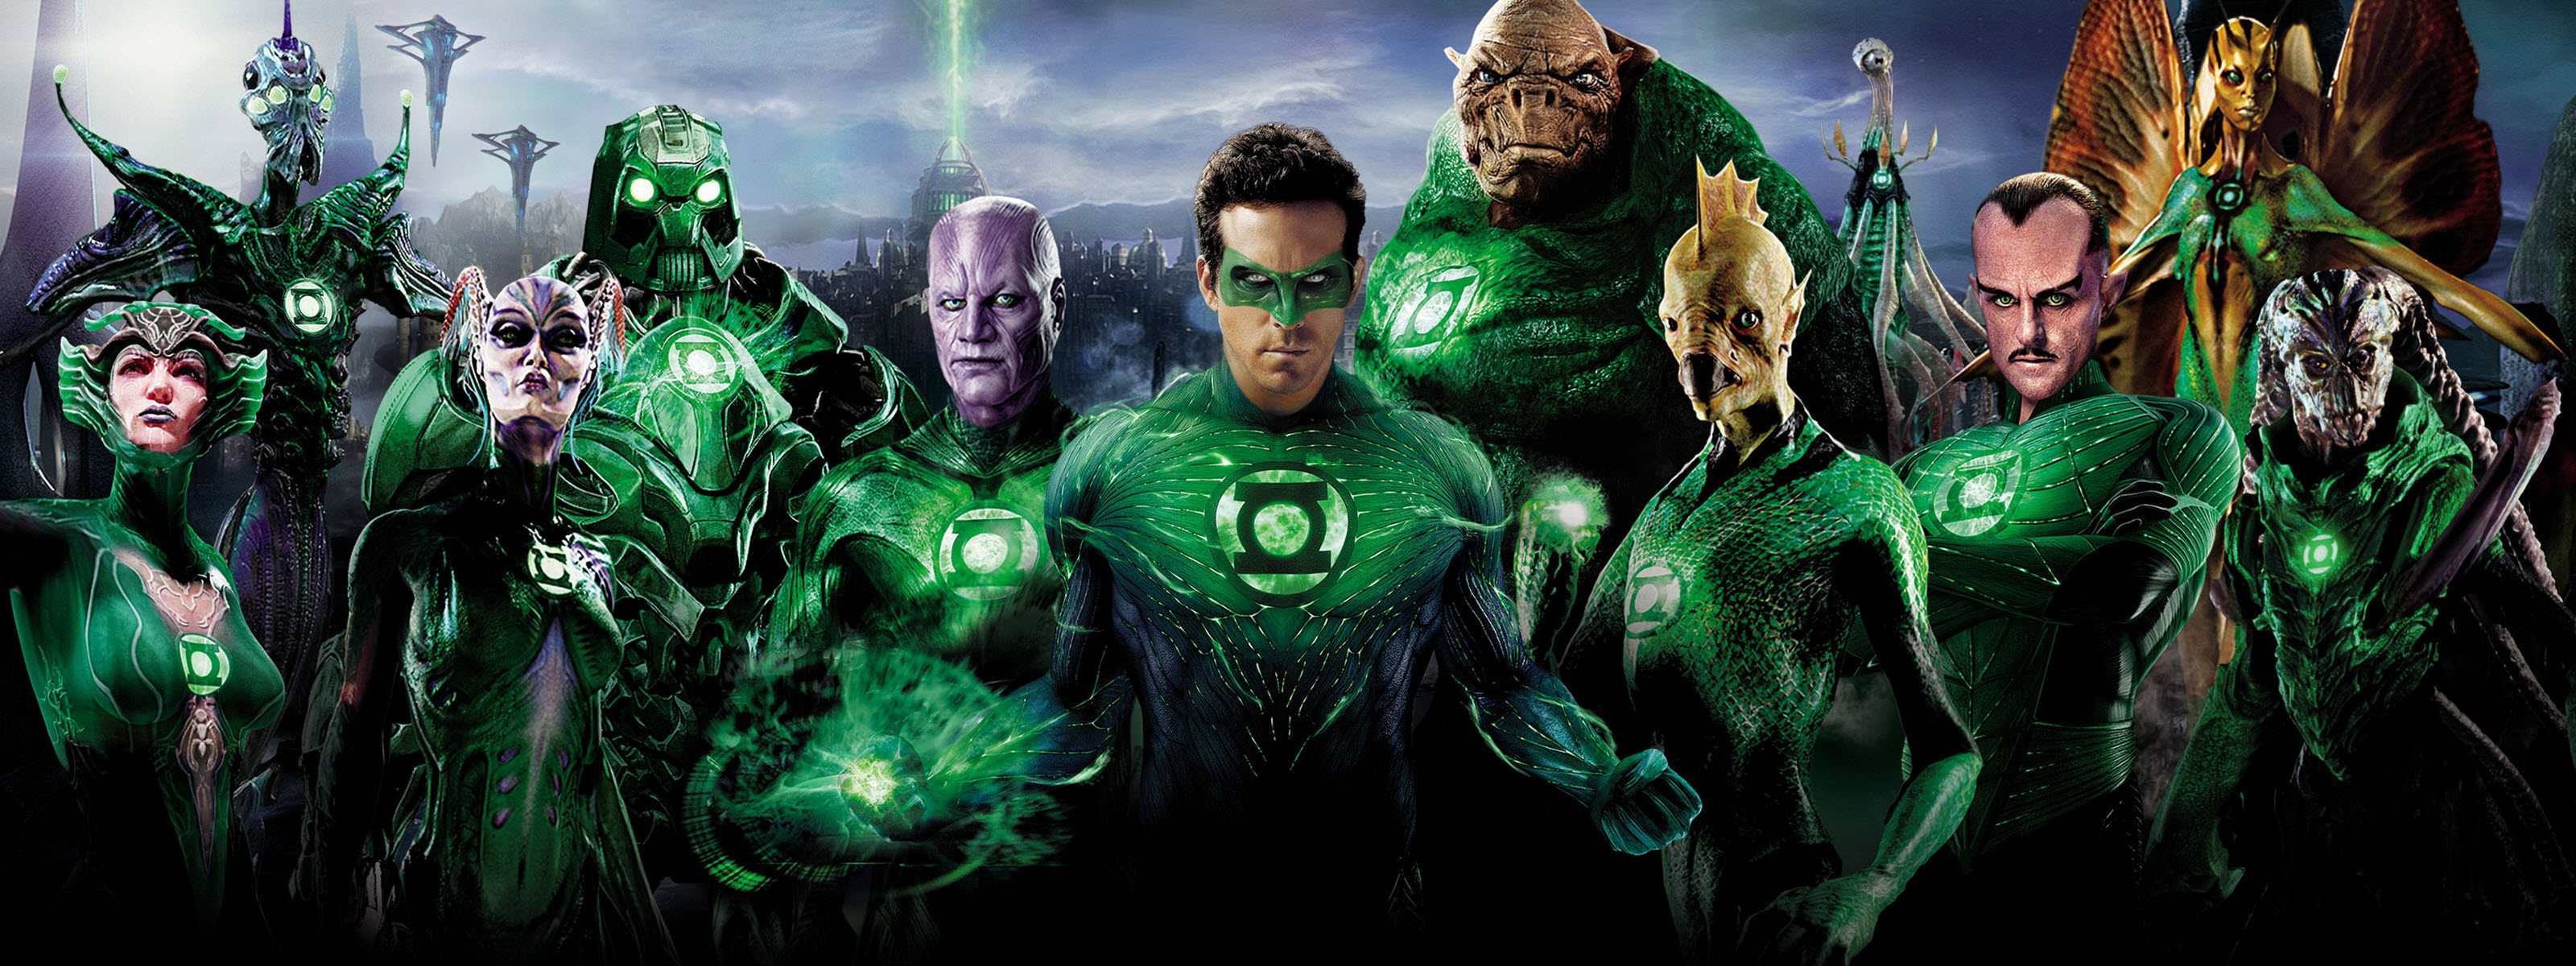 Green Lantern Superheroes Wallpapers HD Wallpapers 3200x1200